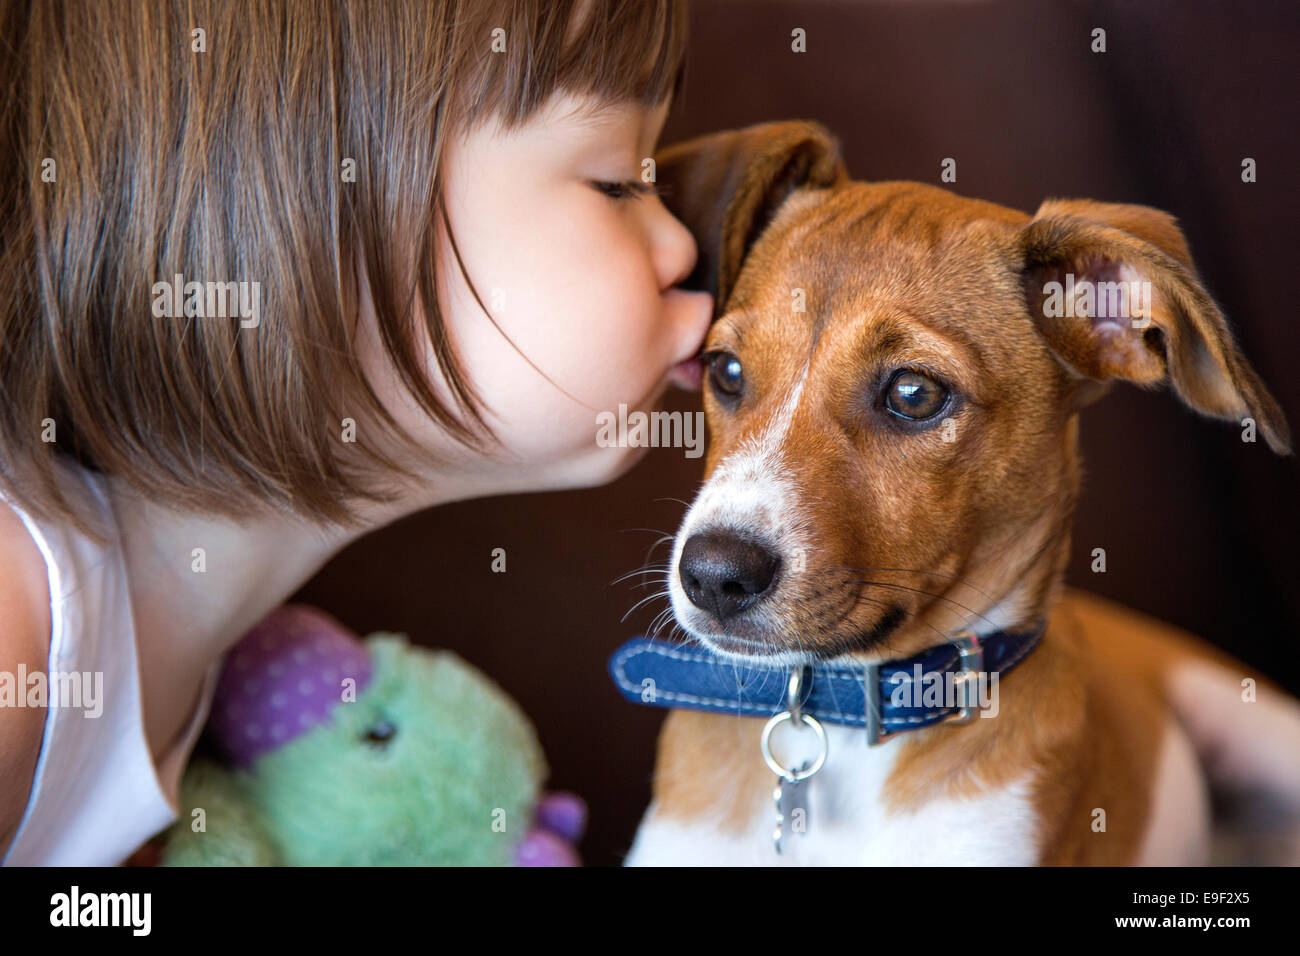 Toddler girl kissing her puppy dog Photo Stock